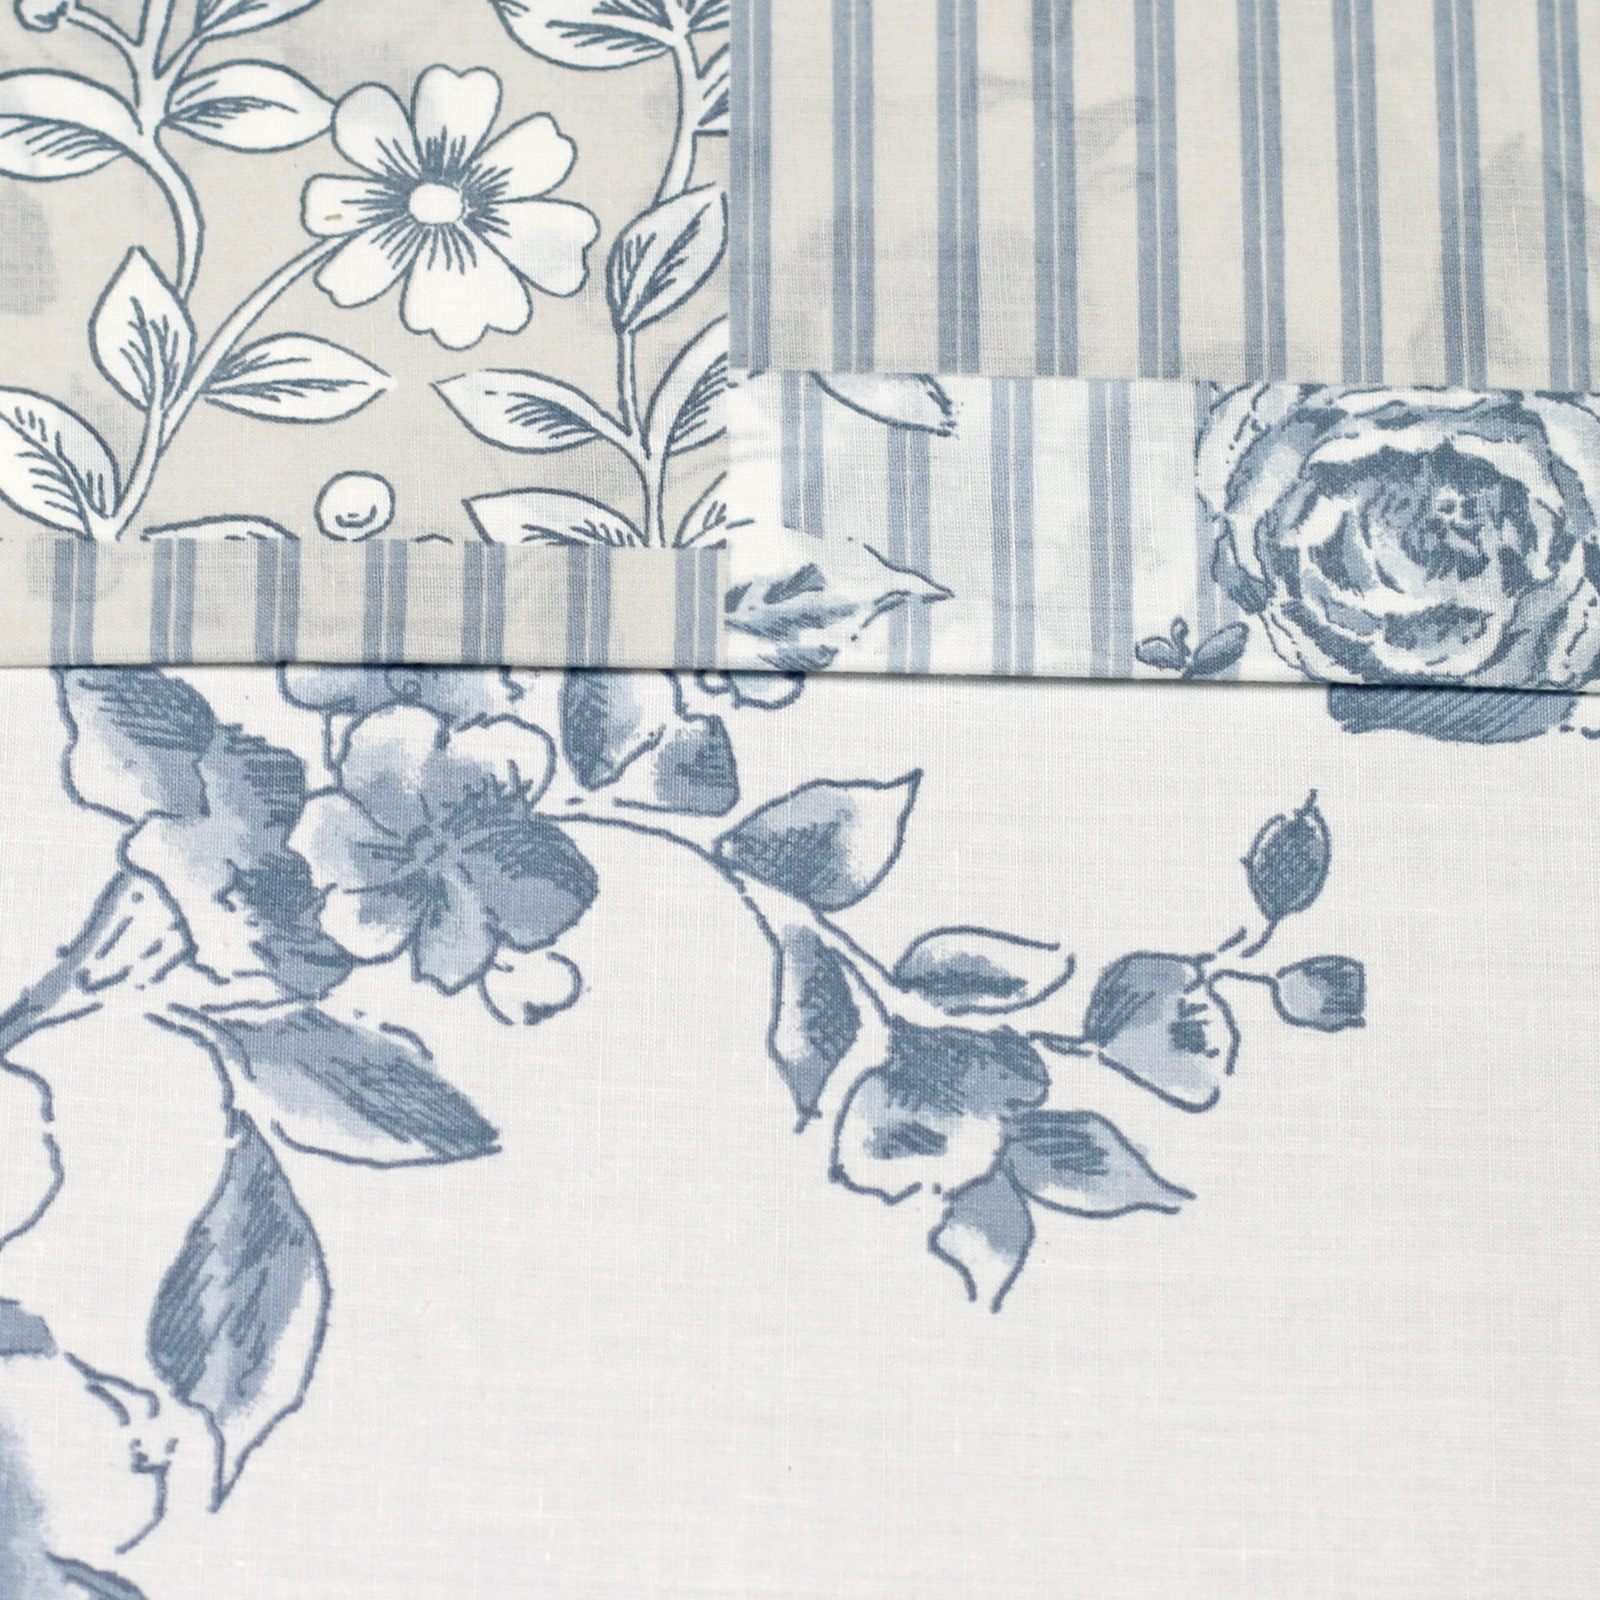 French Country Toile Duvet Cover With Florals & Reversible Patchwork Stripes